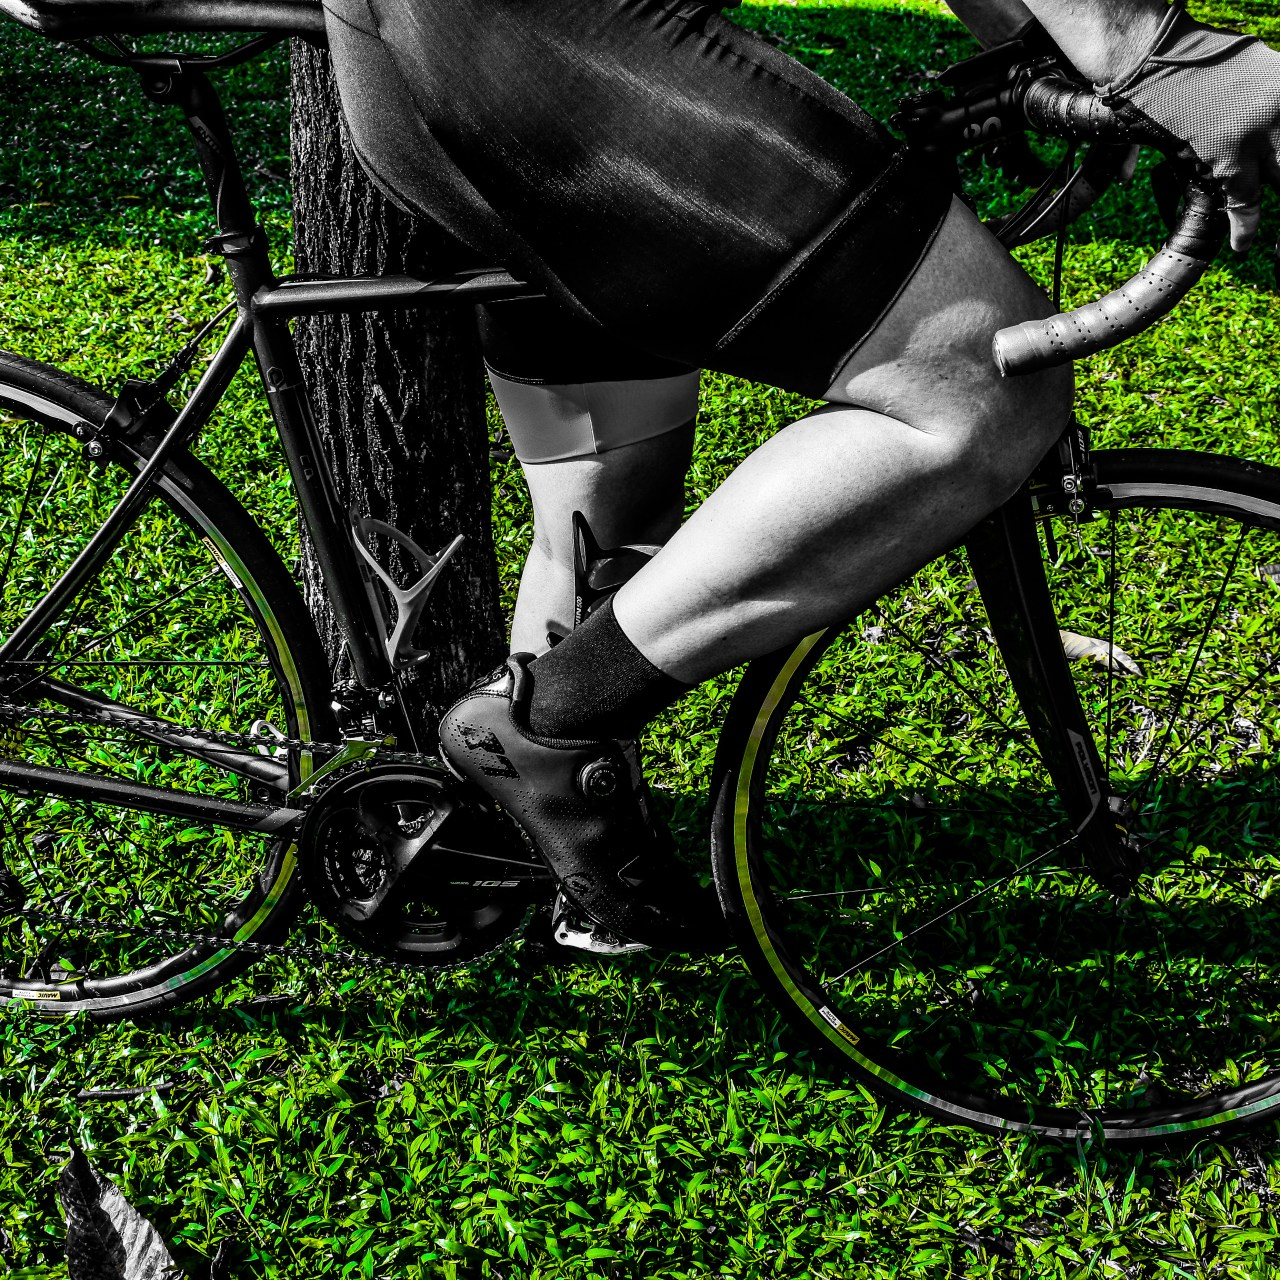 A shadowed picture of a man on his bike in grey and green